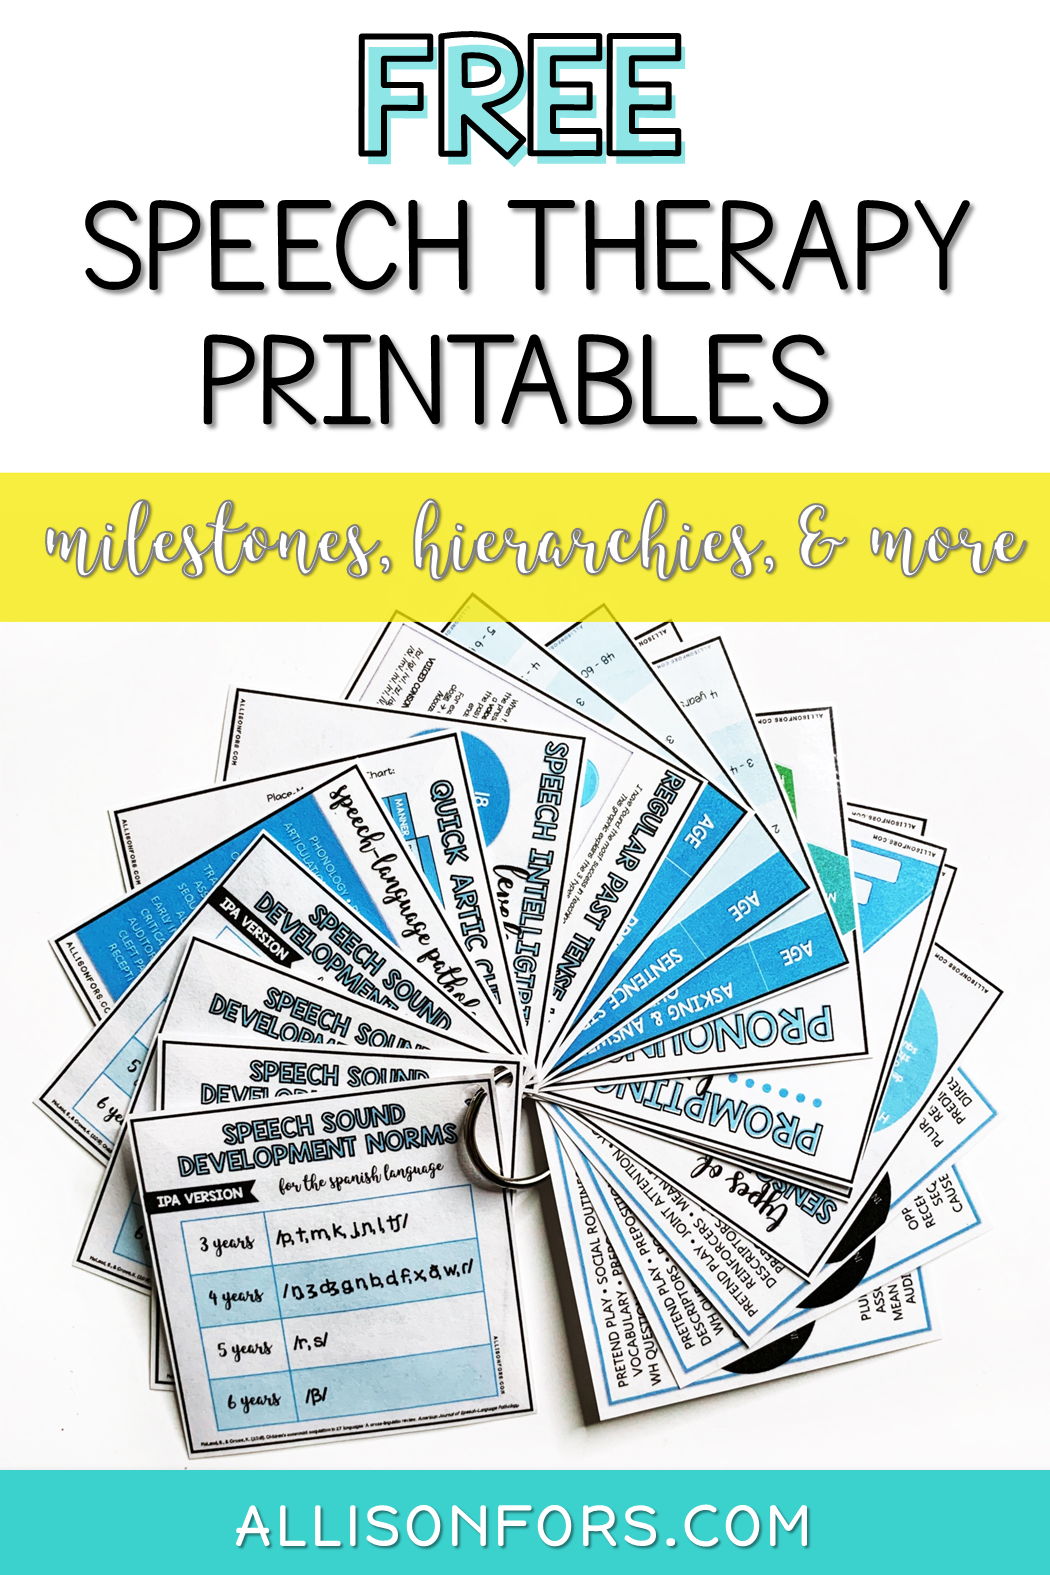 Free Speech Therapy Printables Milestones Hierarchies